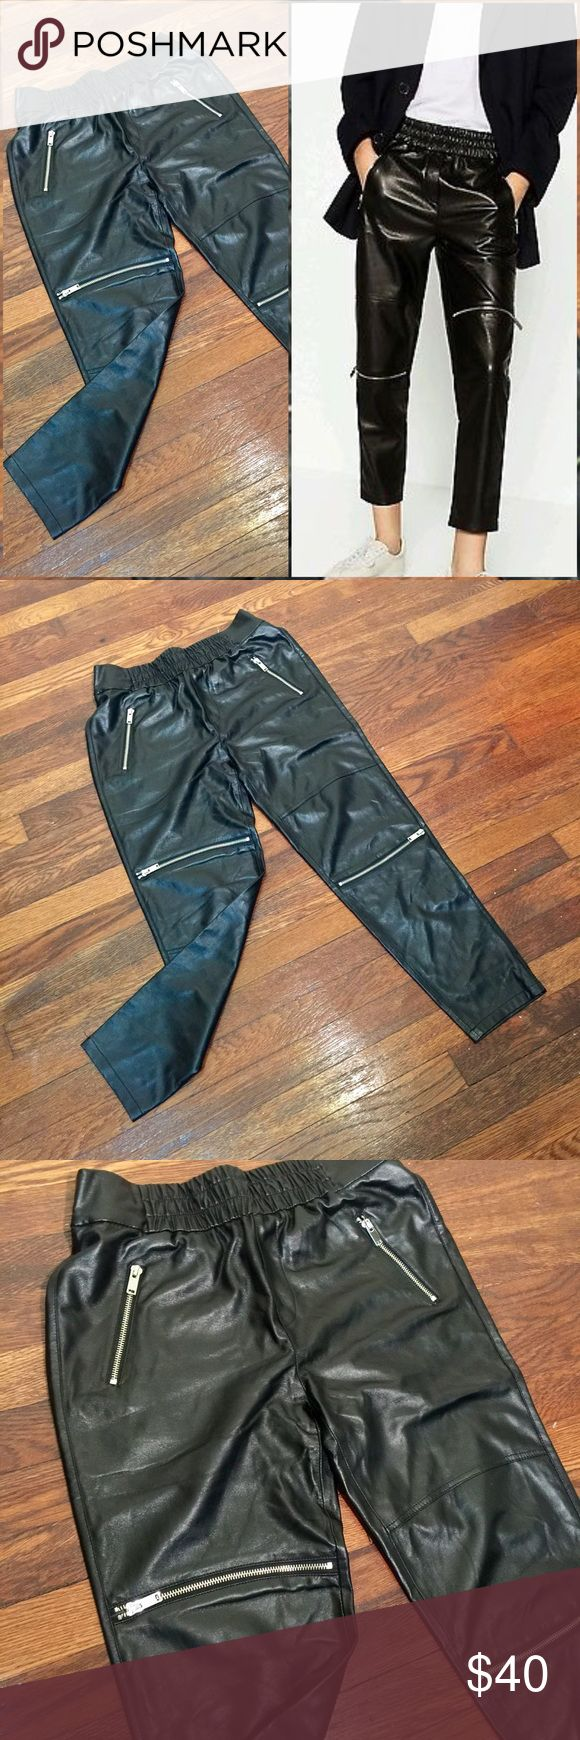 "Zara Premium Collection Faux Leather Jogger Pant S Versatile pair of black faux leather jogger pants from the Zara Premium Denim Collection with zip details. Crop cut, 25"" inseam. Elastic waistline, material is stretchy! Fit like a thick pair of leggings. Size S, worn once, like new condition. Zara Pants Track Pants & Joggers"